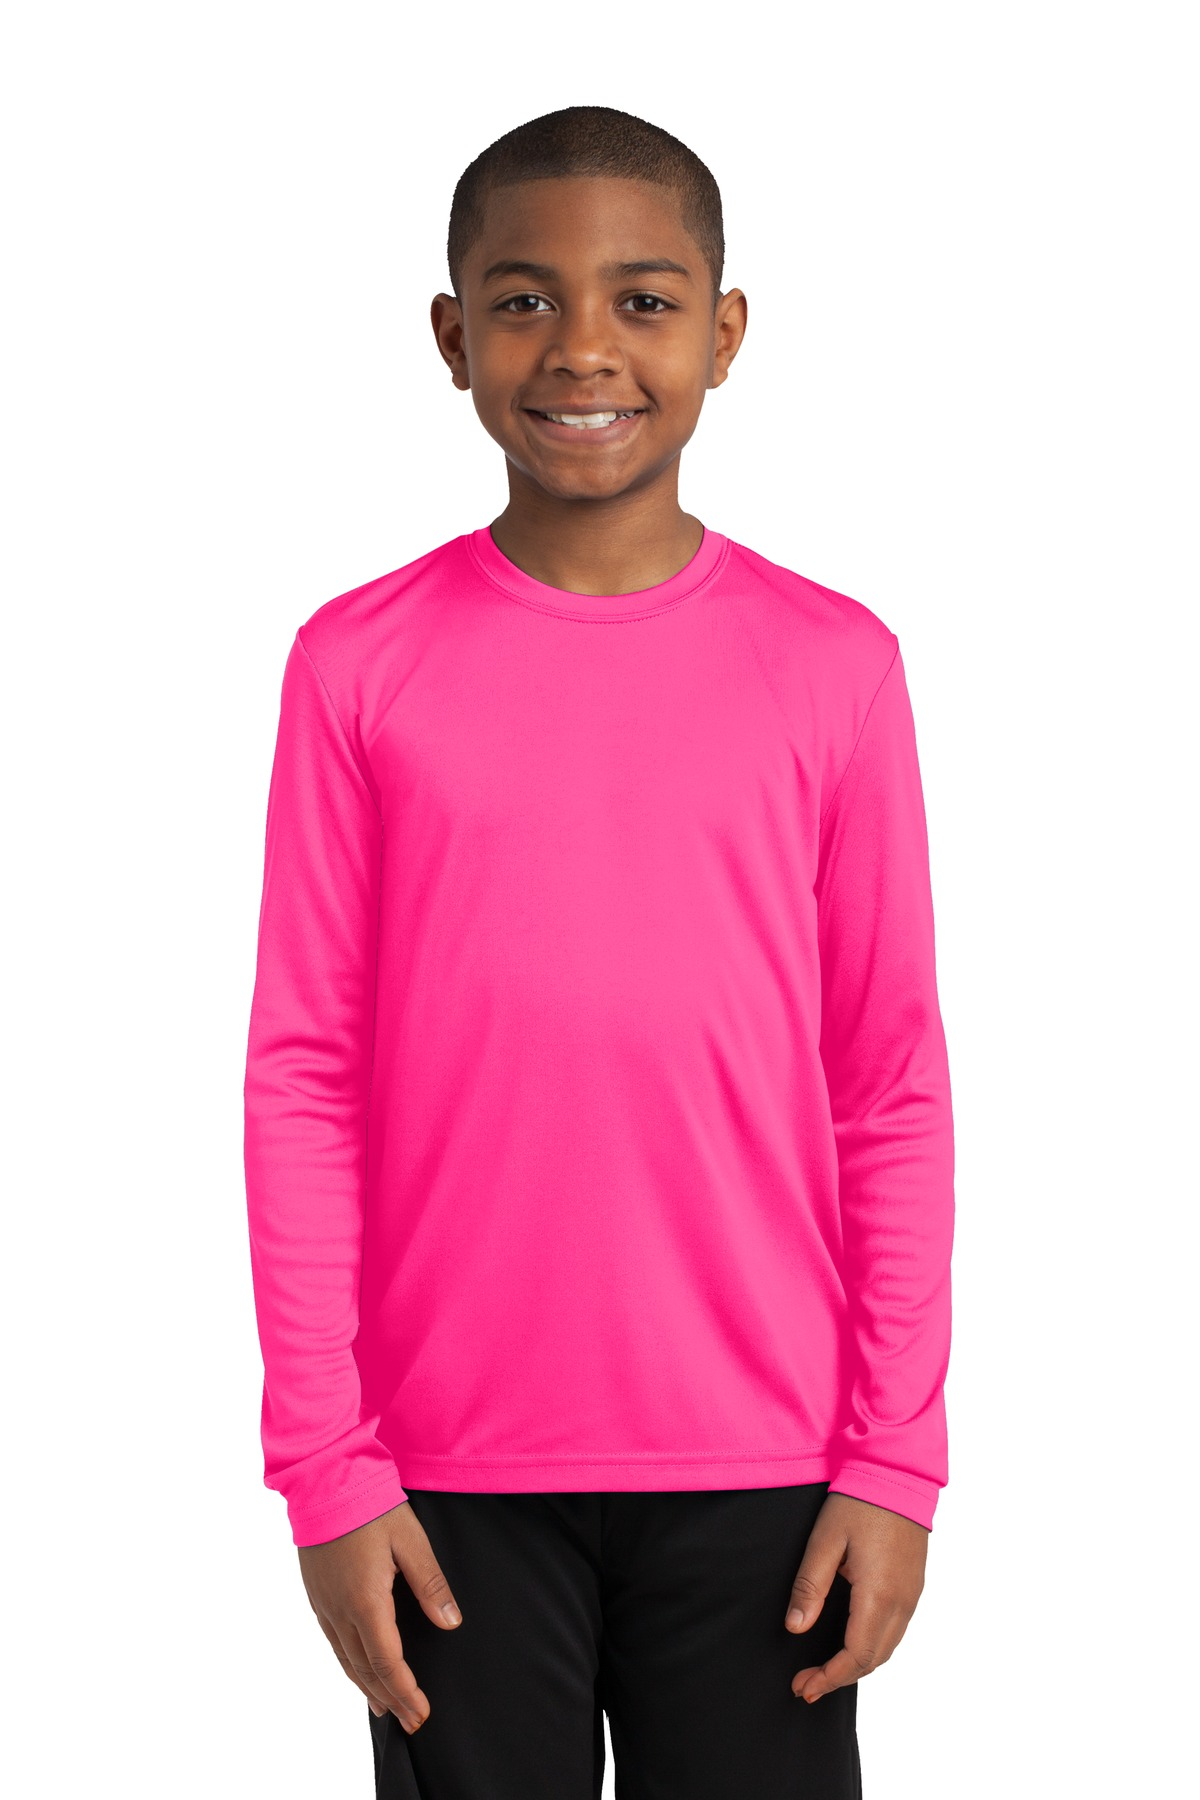 Sport-Tek ®  Youth Long Sleeve PosiCharge ®  Competitor™ Tee. YST350LS - Neon Pink